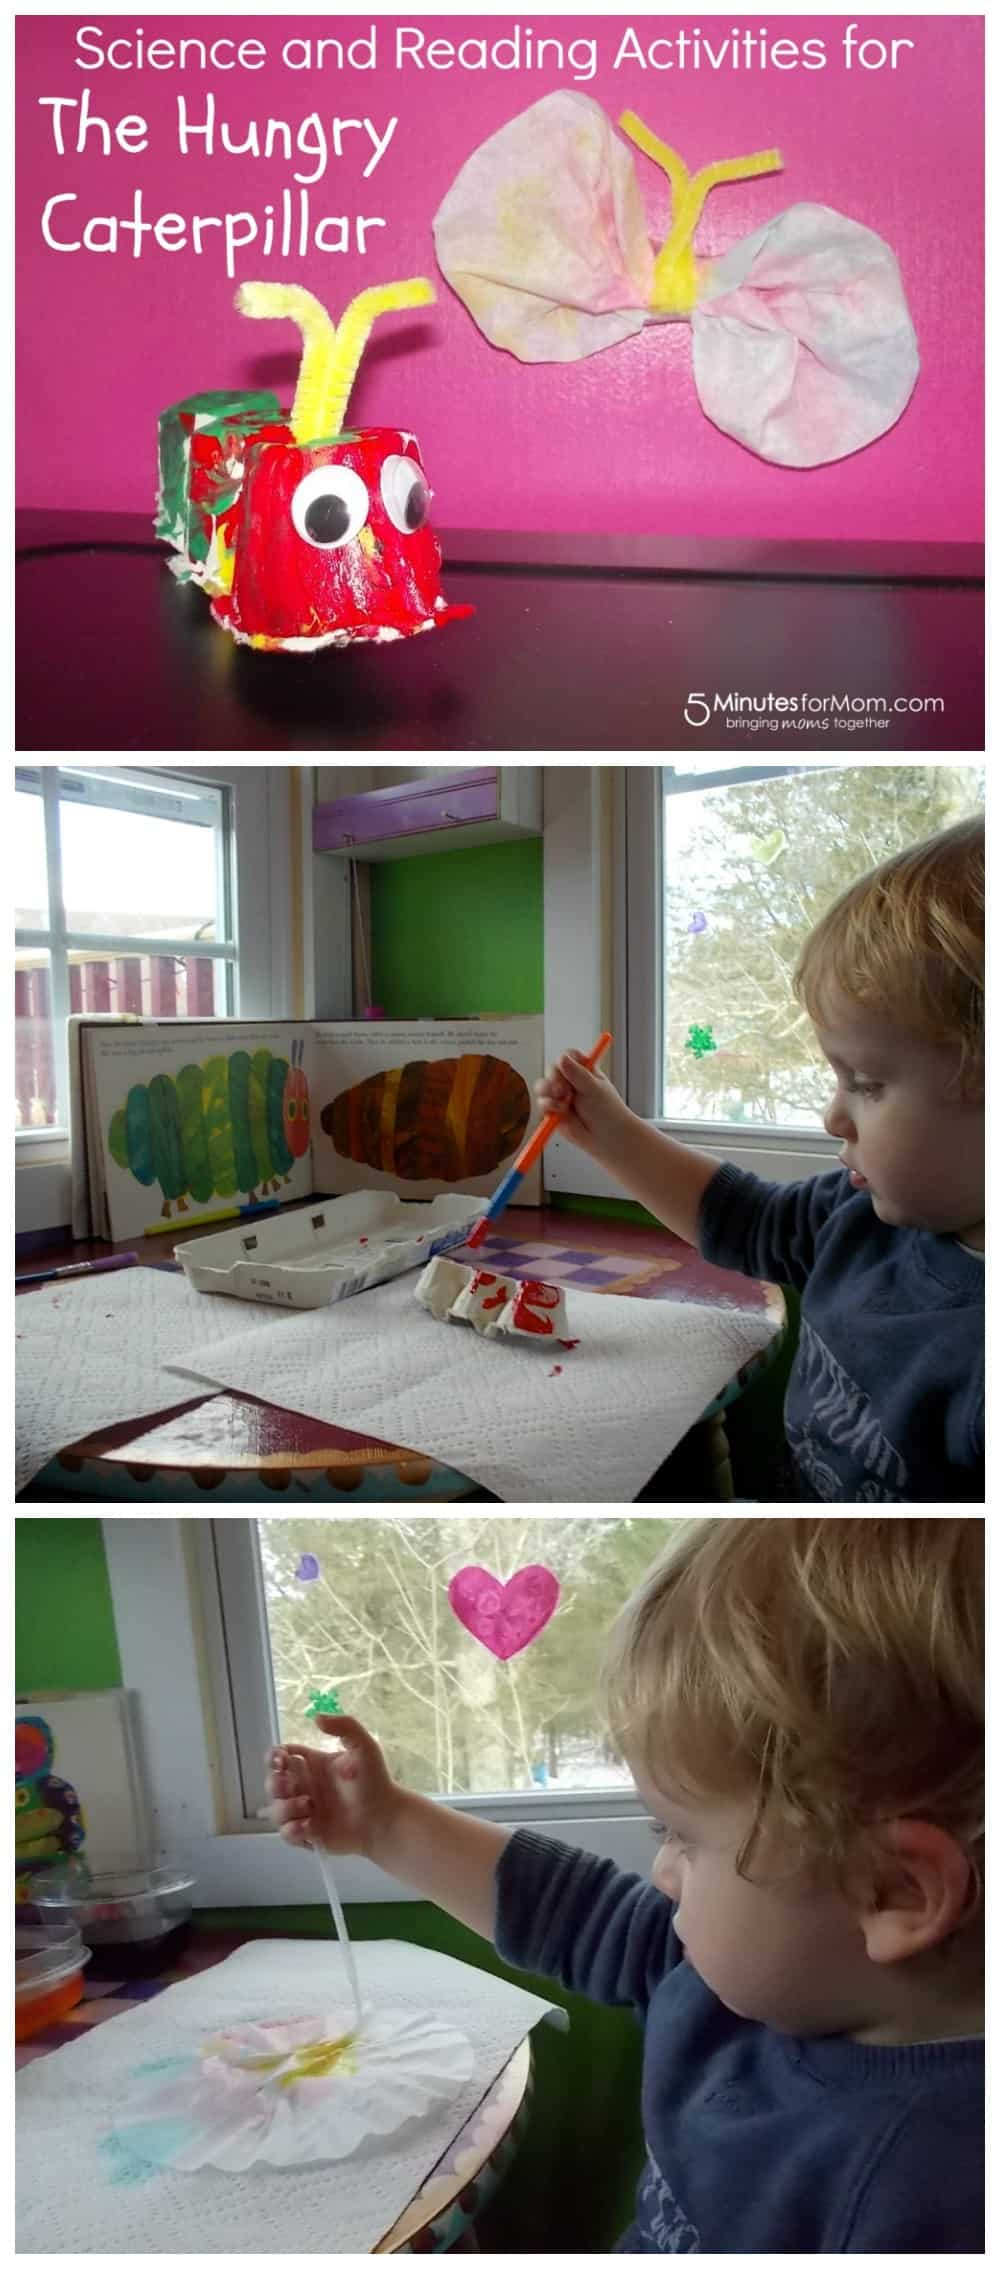 Science and Reading Activities for The Hungry Caterpillar